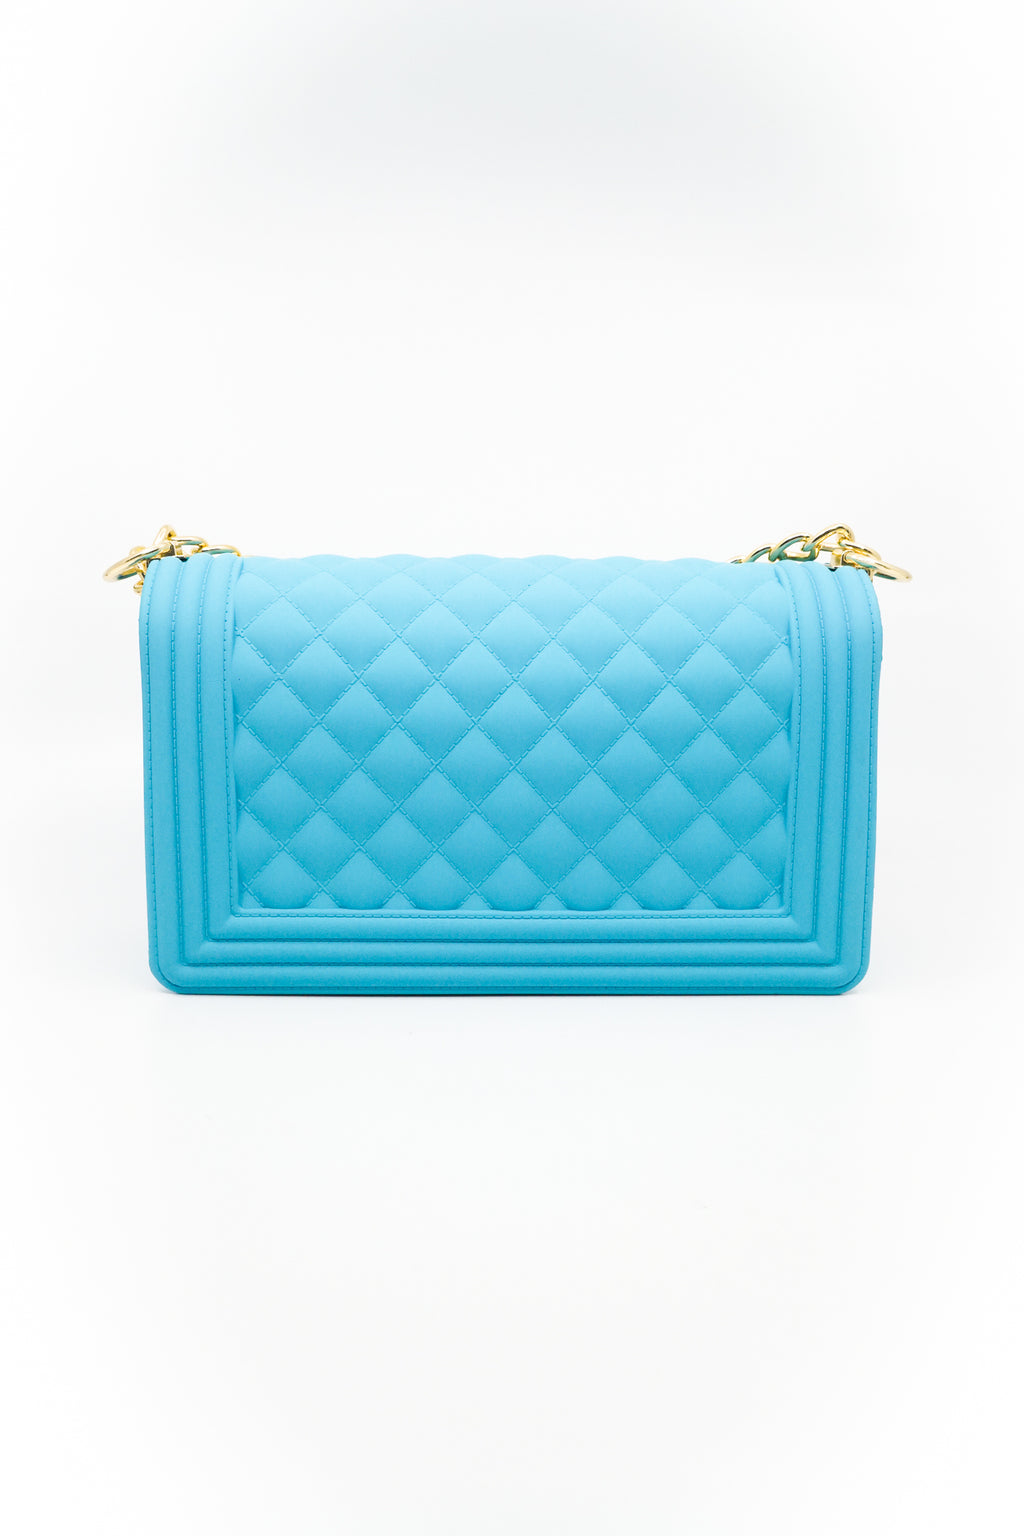 Quilted Crossbody Jelly Bag in Mint Blue - Fashion House USA